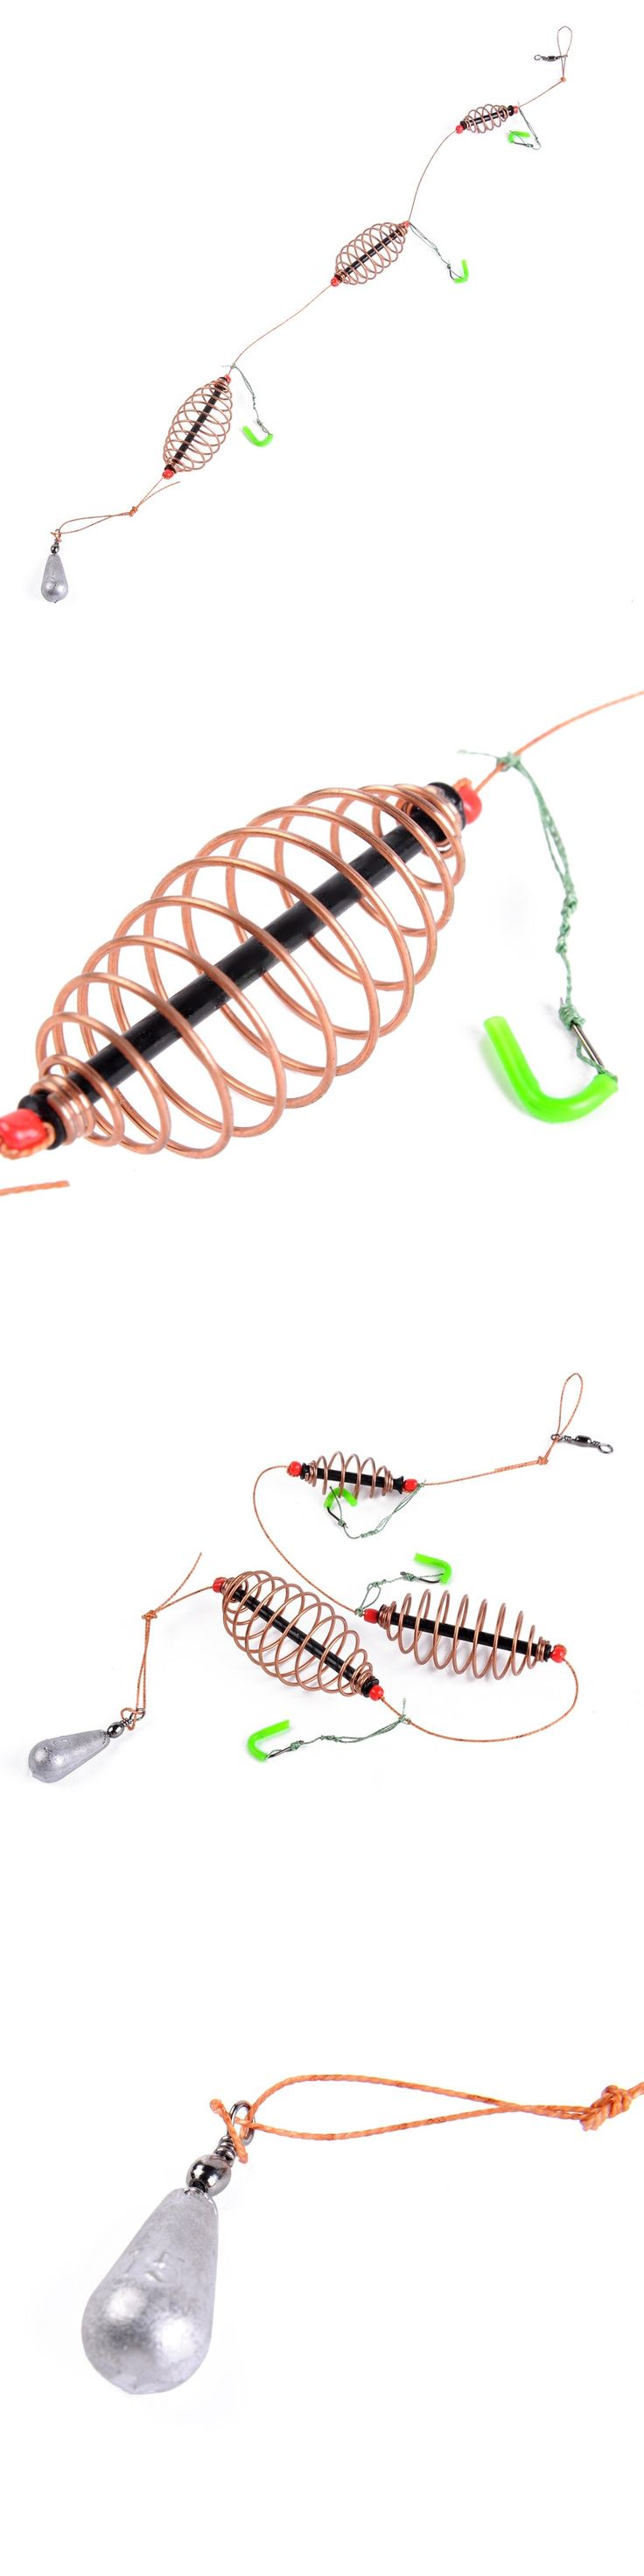 2016 New 1pcs/Pack 15g 20g 30g Fishing Bait Cage lead sinker Swivel With Line Hooks For Carp Feeder Fishing Tackle Accessories